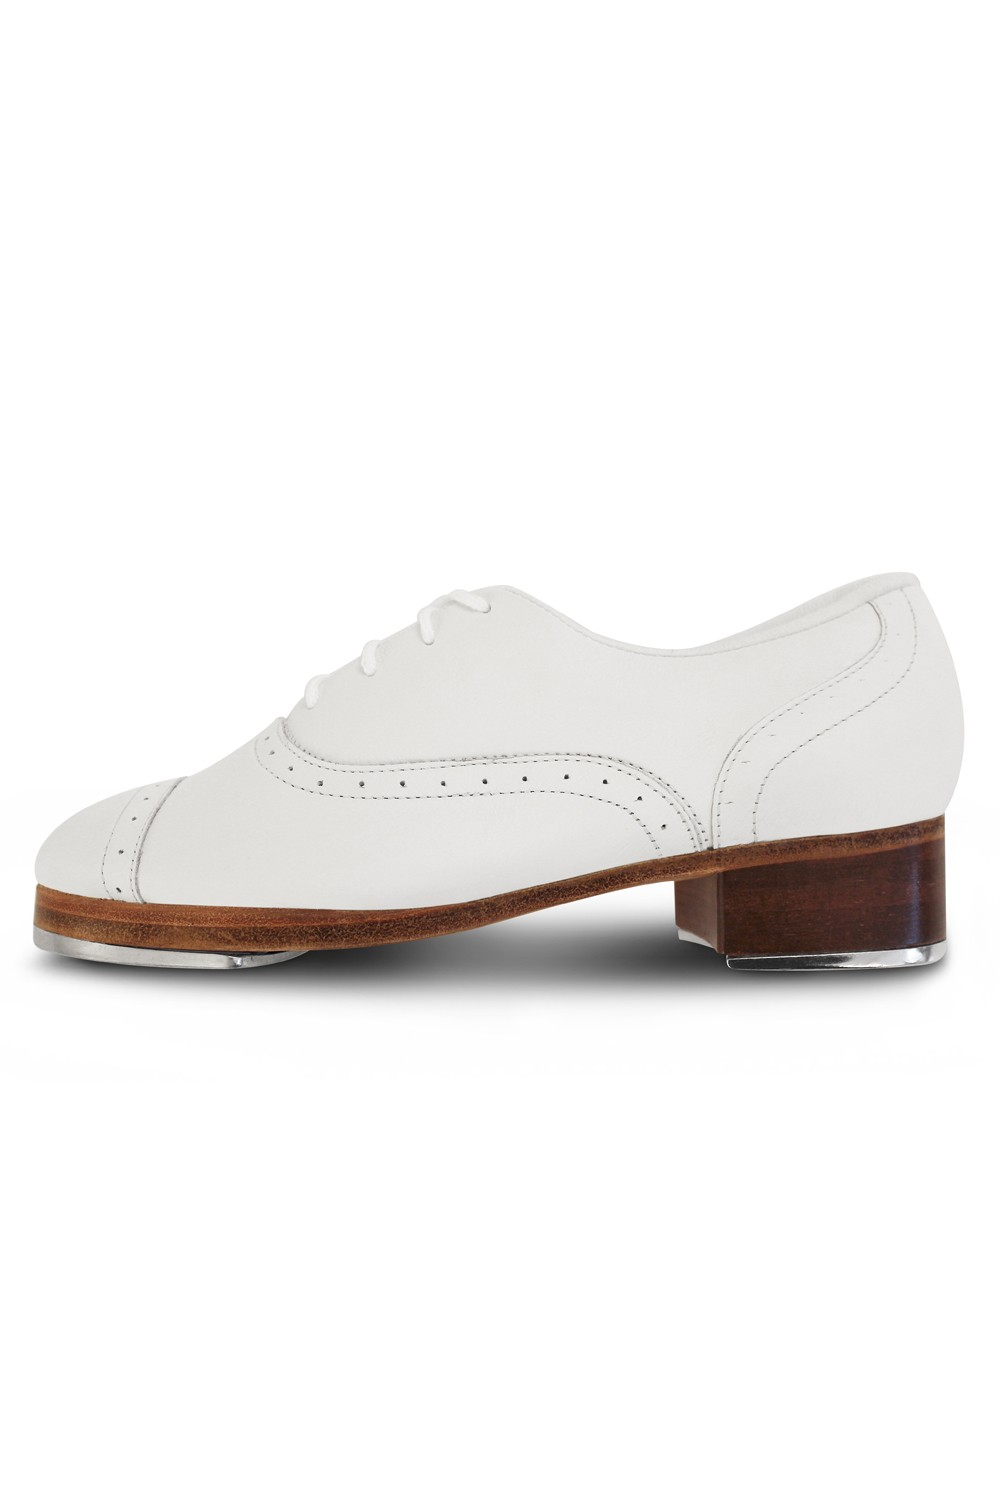 Shop Professional Uk Tap Quality Shoes Bloch® S8nw8gqZ